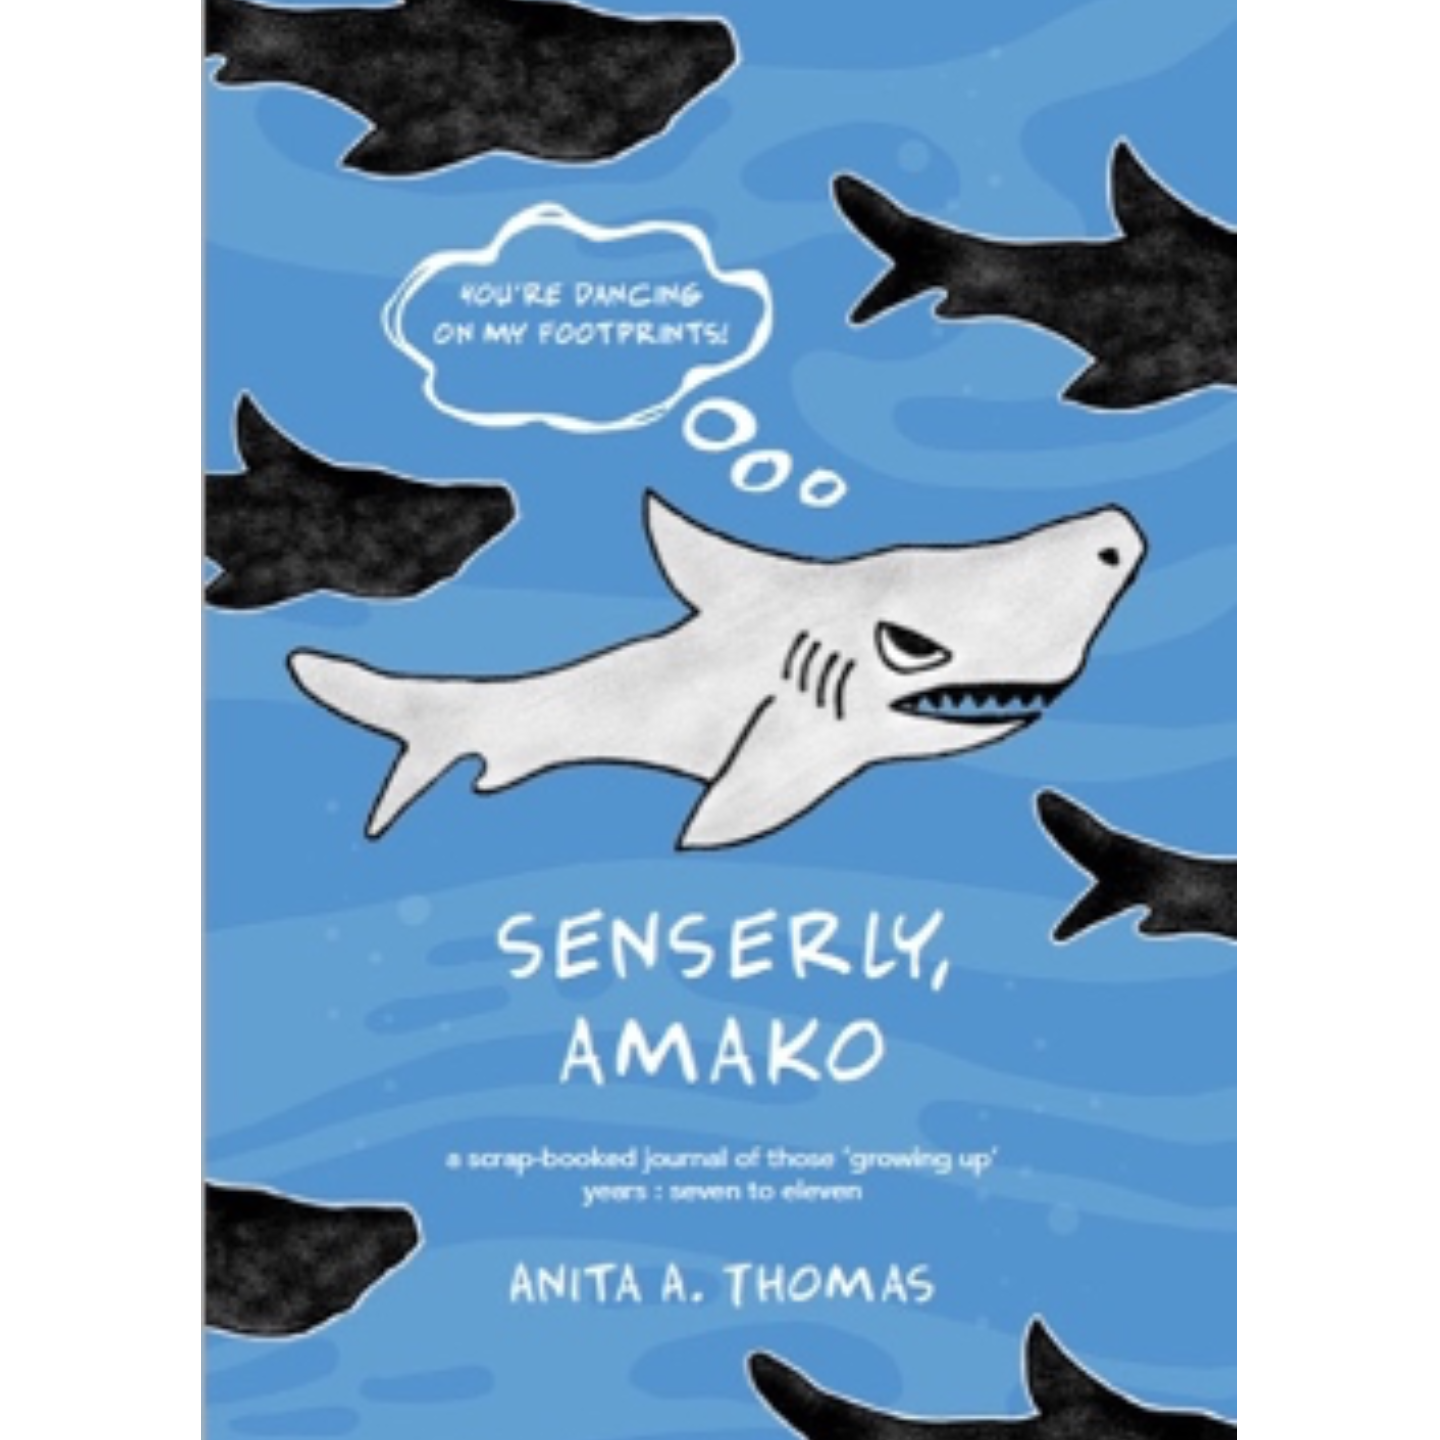 Senserly Amako by Anita Thomas